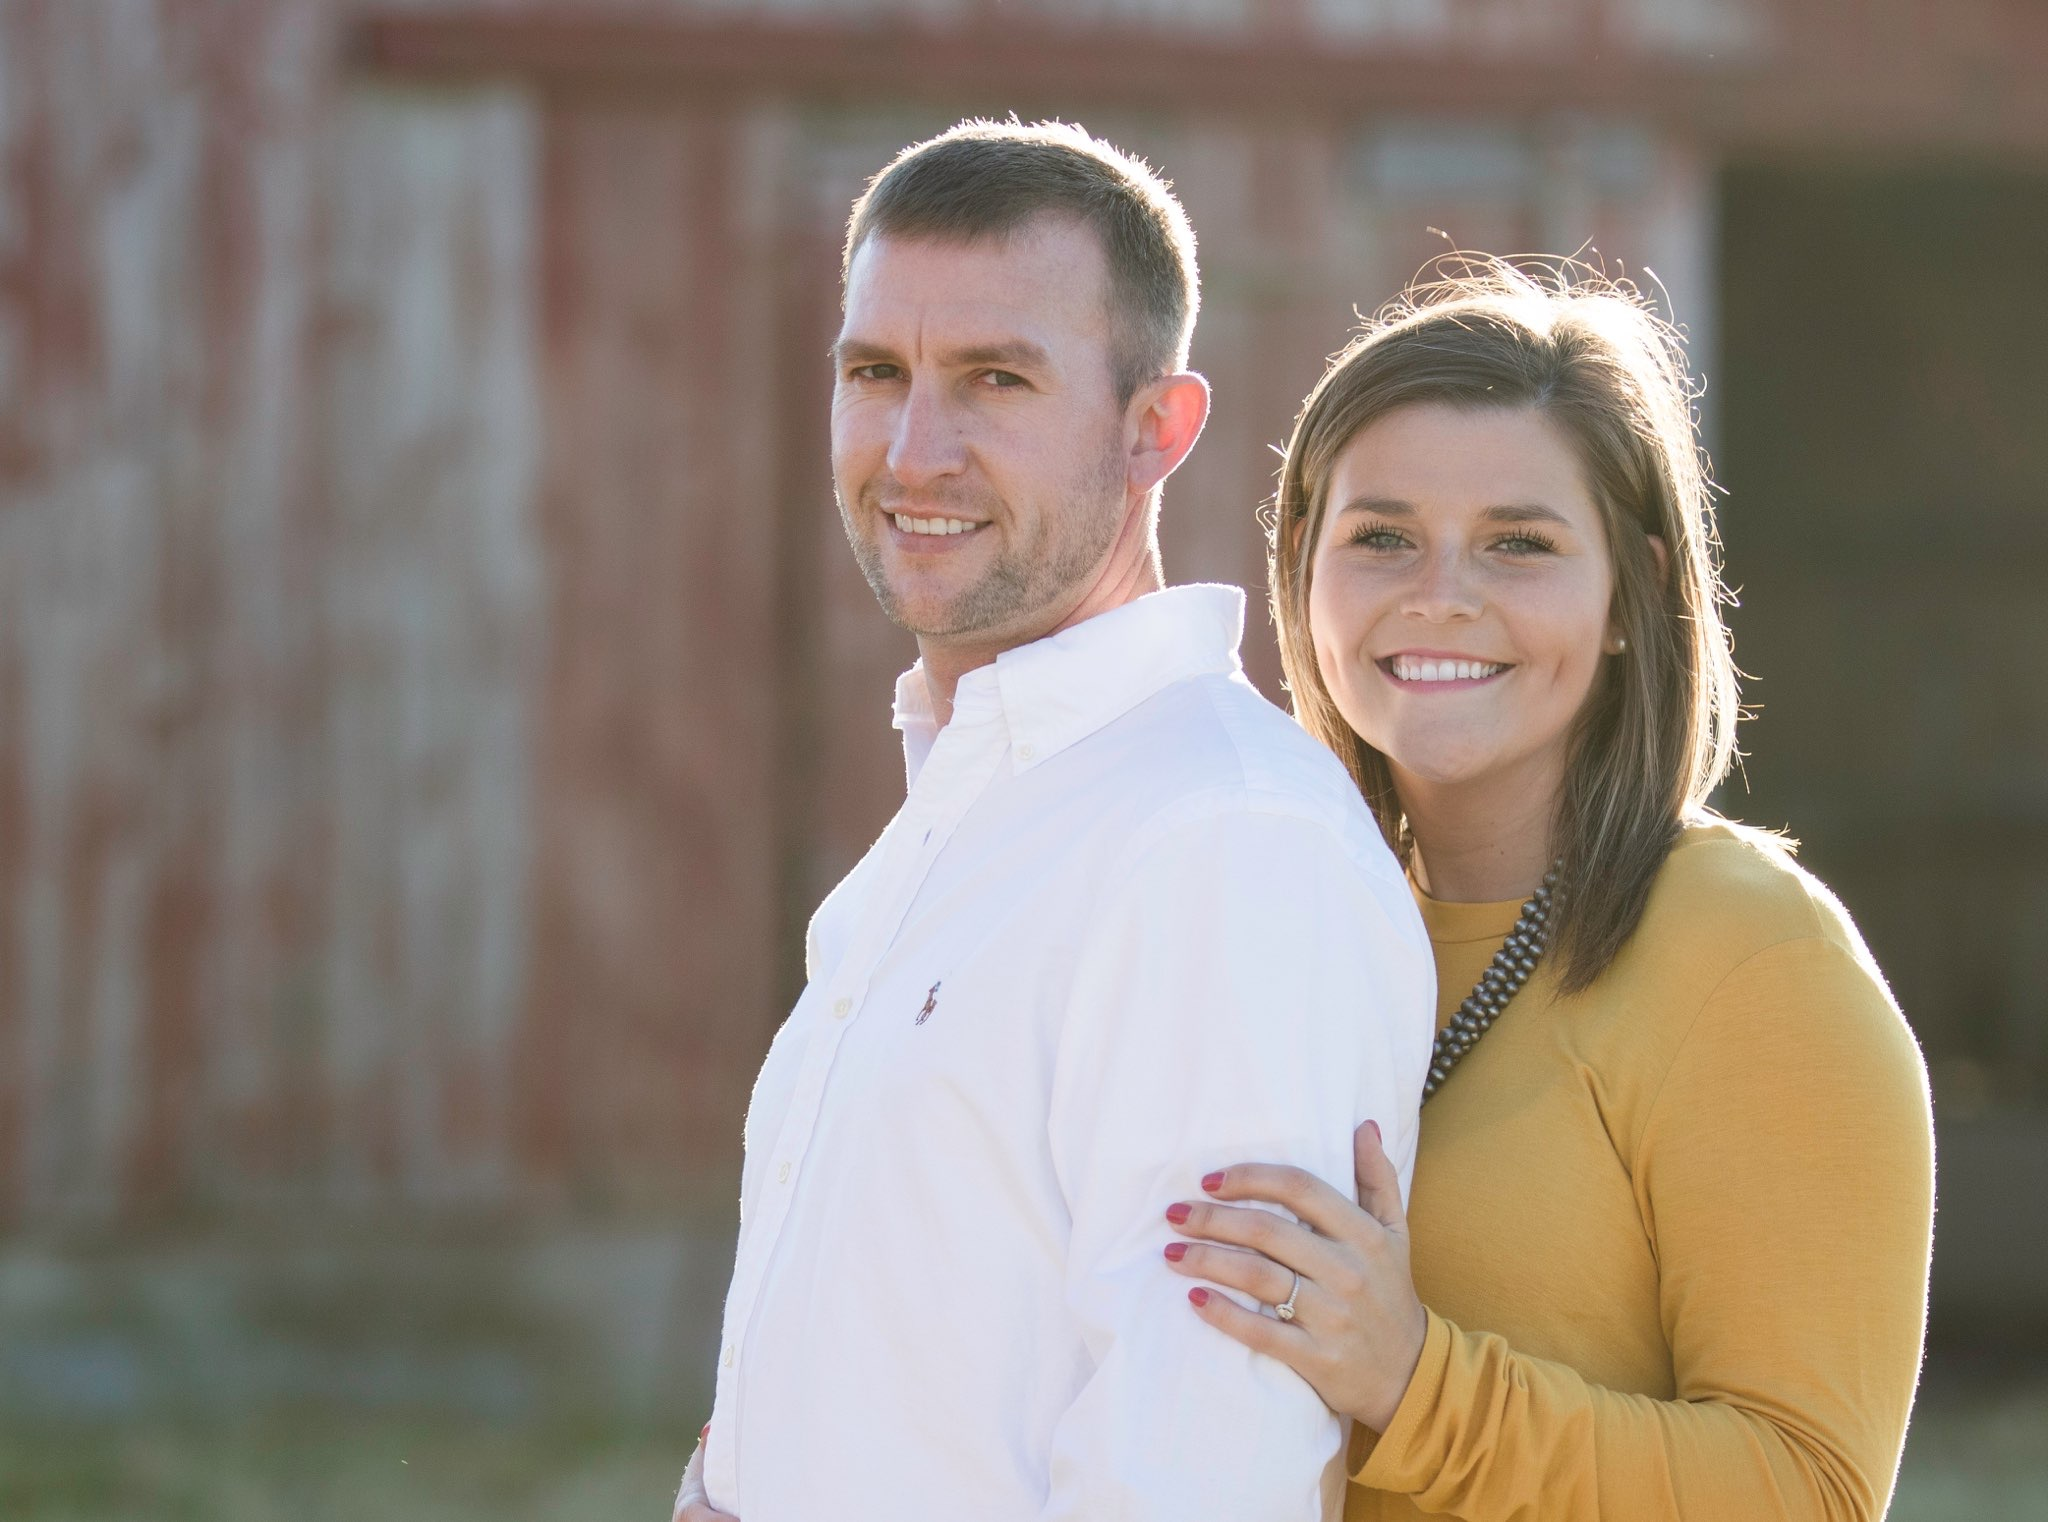 Madison & John - We've always known God's timing is perfect and that couldn't be more true when it comes to us. After dating for two and a half years, John popped the question on November 3, 2018 at a cattle sale in Lima, Ohio. We are so grateful that we share the same passion for the livestock industry.After meeting Mike and Robin for the first time, we had no doubt in our minds that the venue we had always dreamed of would be finished and perfect by September 7th! We can't wait to celebrate our big day at New Journey Farms.